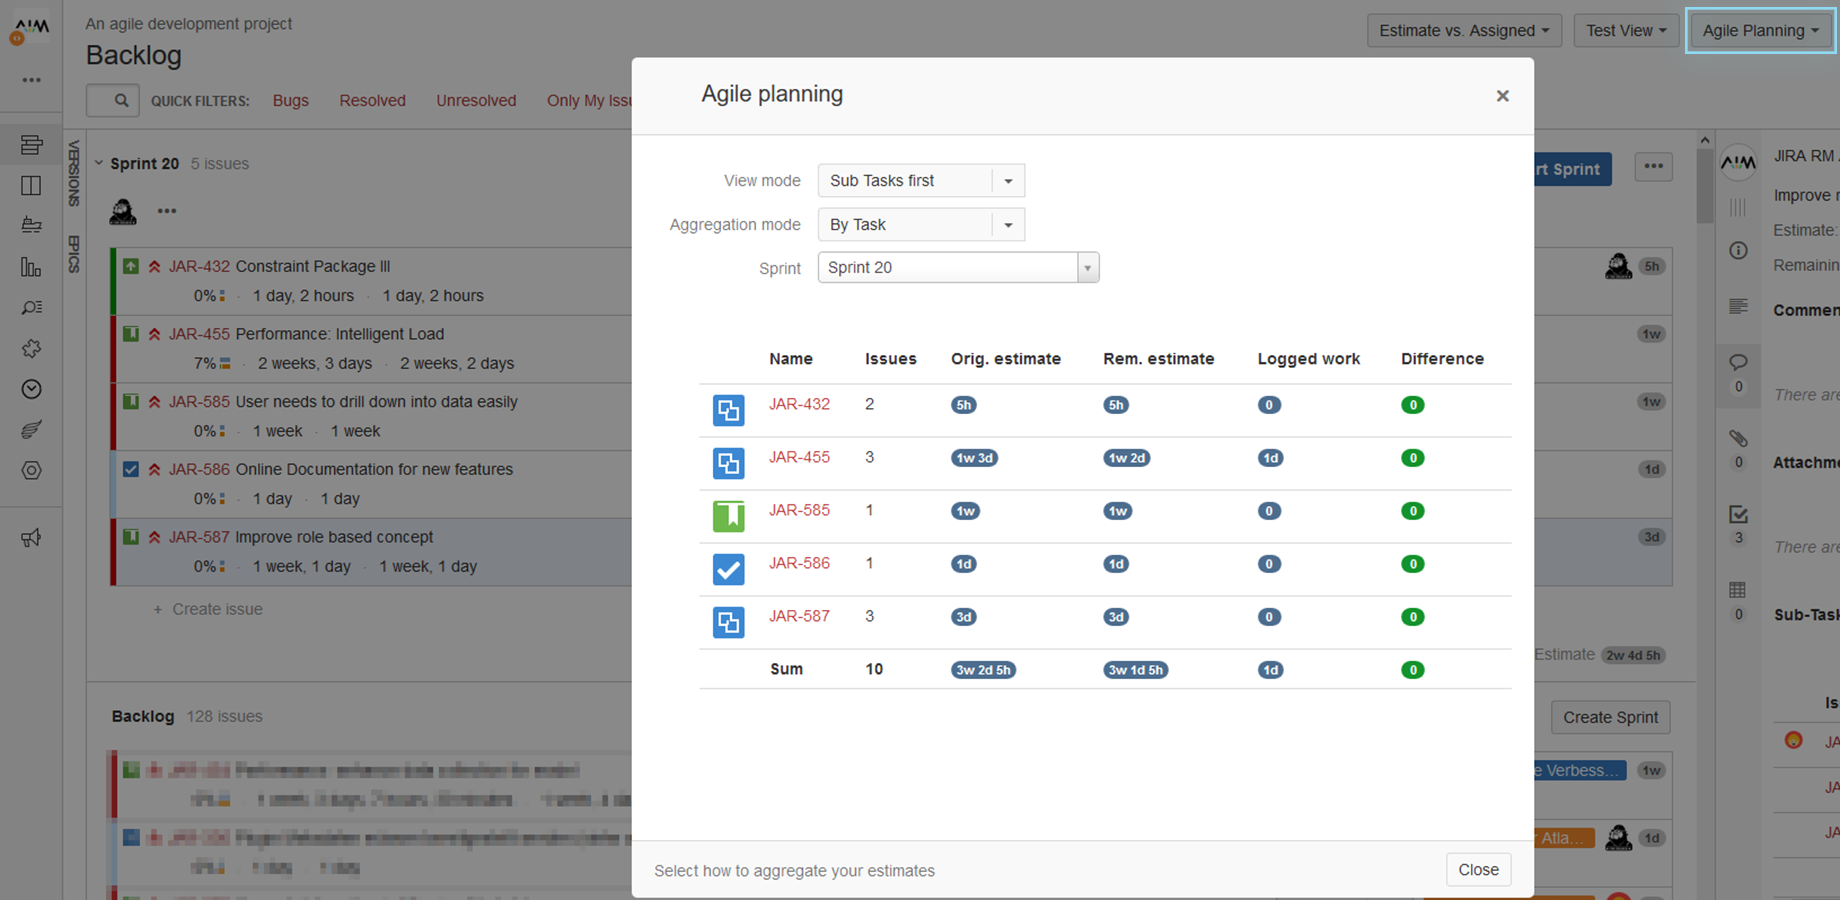 AIM Agile Planning for JIRA Screenshot